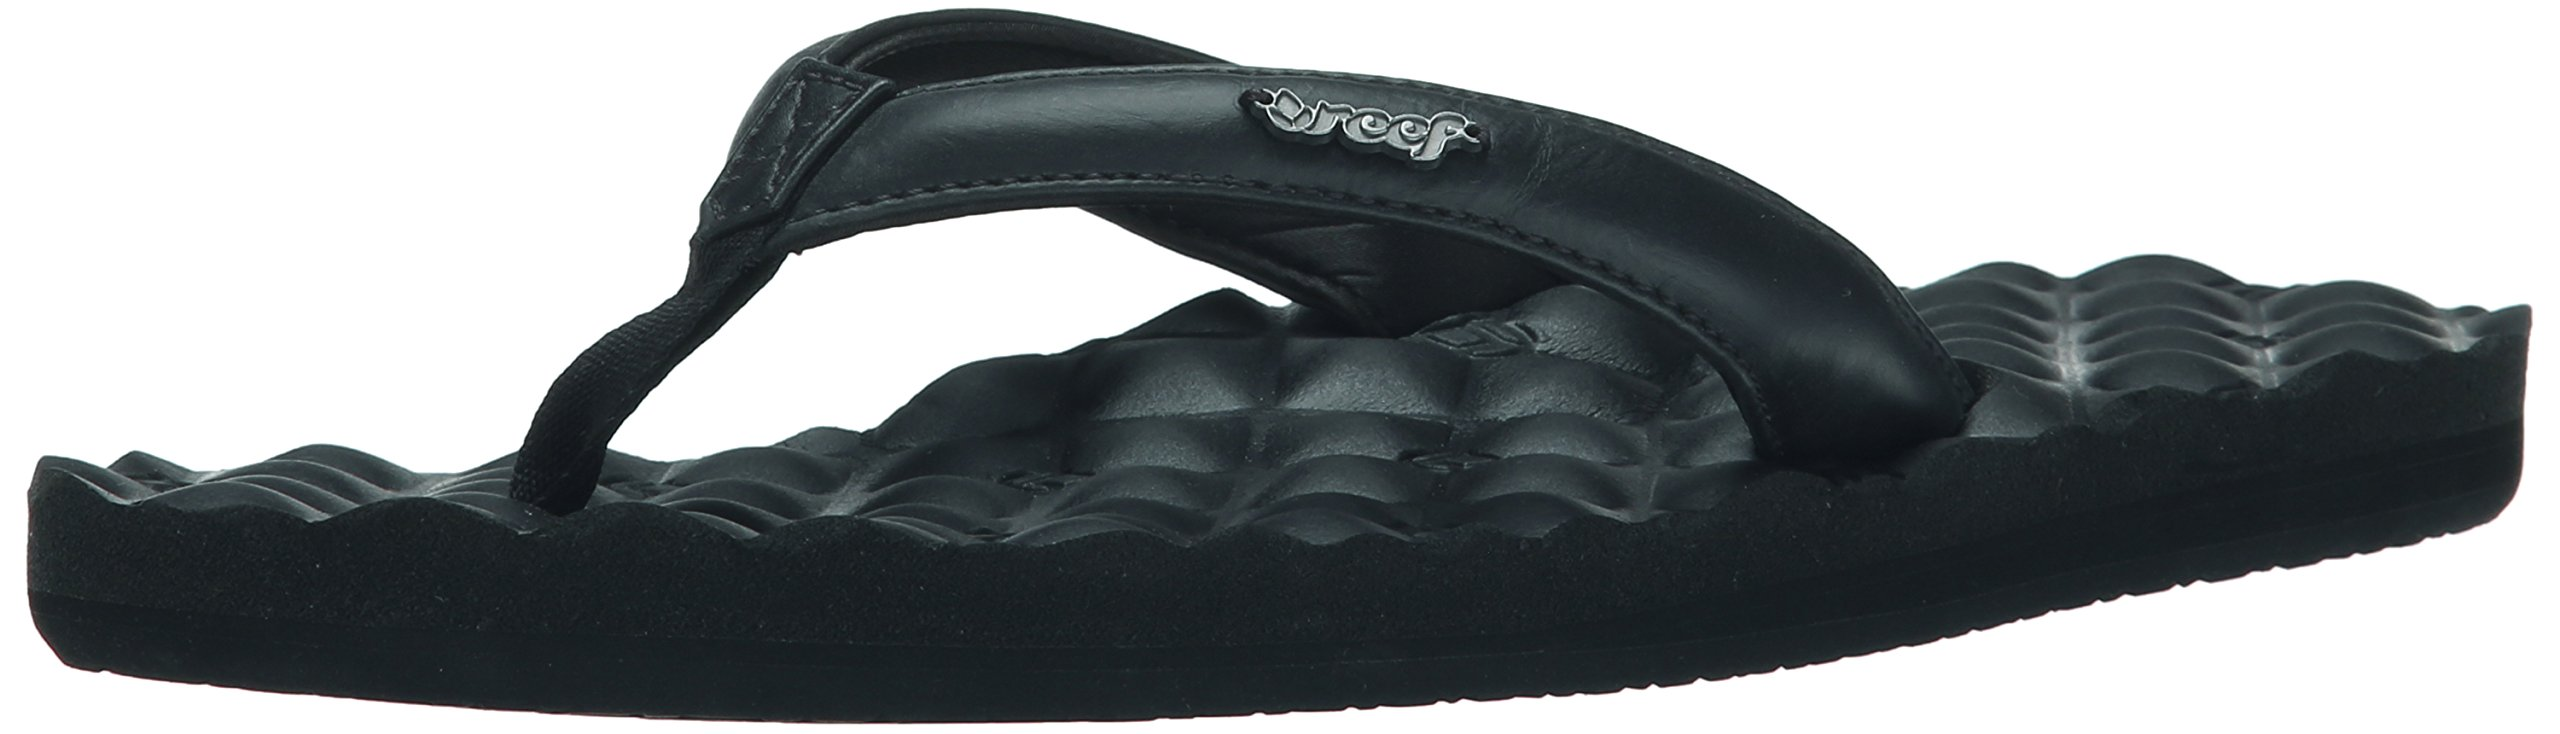 Reef Womens Sandals Dreams | Faux Leather Quilted Flip Flops For Women With Soft Cushion Footbed | Waterproof ,  ,